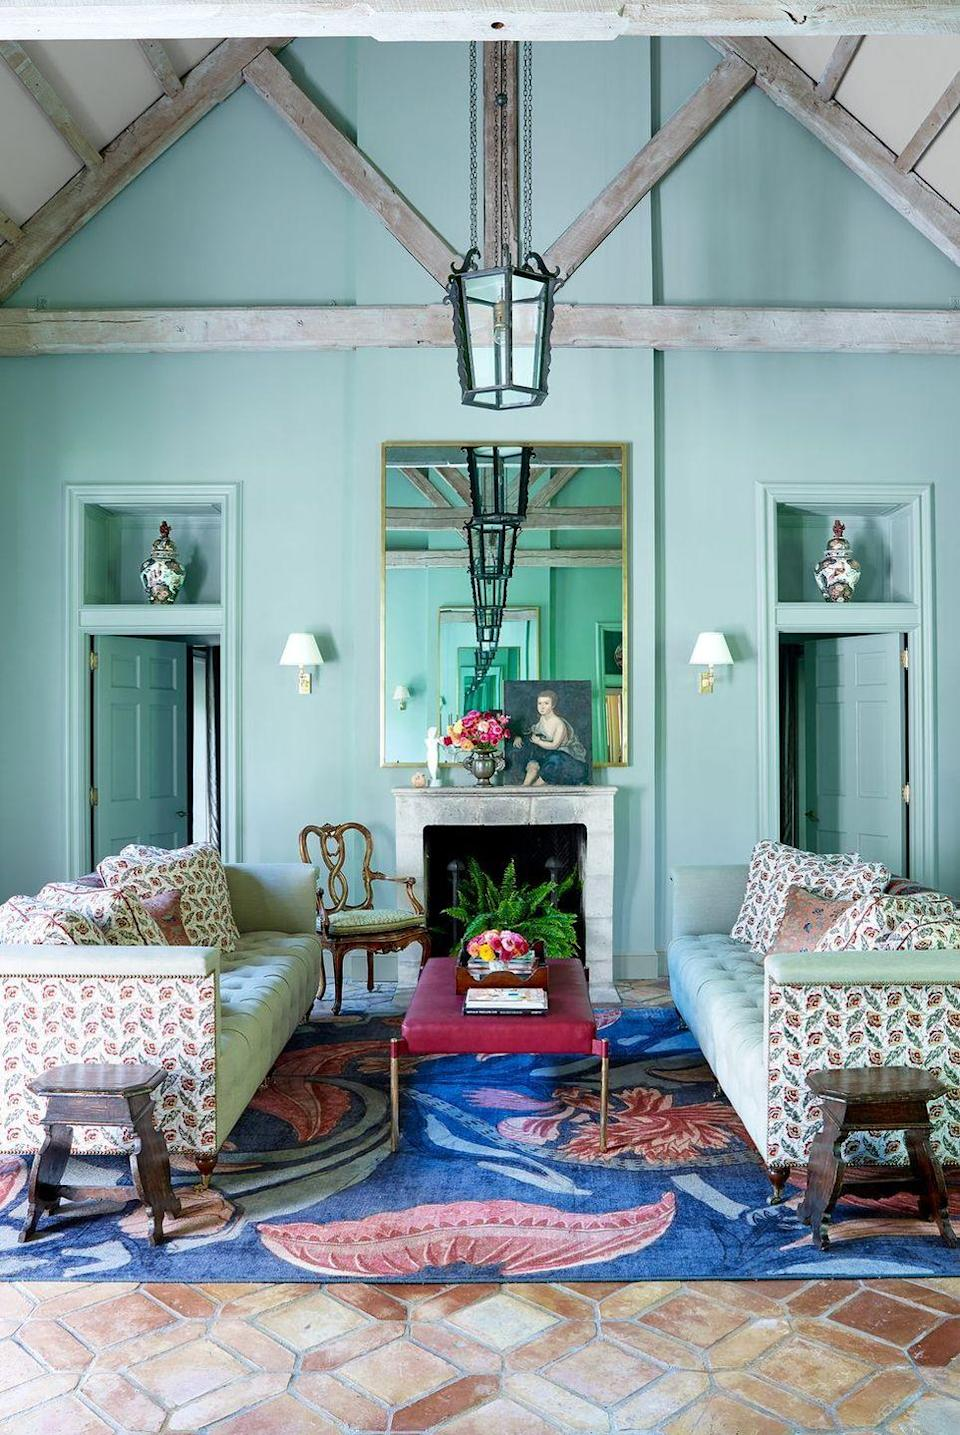 """<p>Channel a lush tropical oasis, as <a href=""""http://jaynedesignstudio.com/team/william-cullum/"""" rel=""""nofollow noopener"""" target=""""_blank"""" data-ylk=""""slk:Thomas Jayne and William Cullum"""" class=""""link rapid-noclick-resp"""">Thomas Jayne and William Cullum</a> did, with this fresh color. In a living room where the paint stretches all the way up to the rafters, the hue changes depending on the way the light hits it, shifting between sharp mint and soft sea foam green. </p>"""